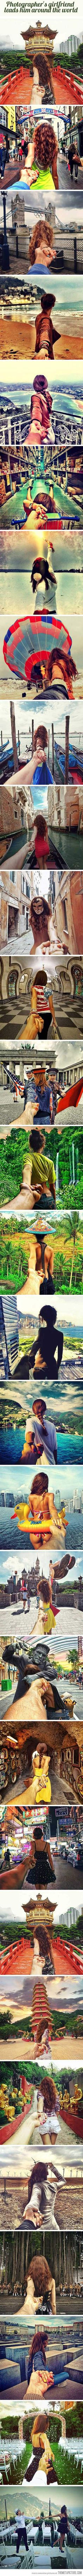 This is a cool concept. More interesting than the plain old poses with different backgrounds usually taken on vaca. ❤